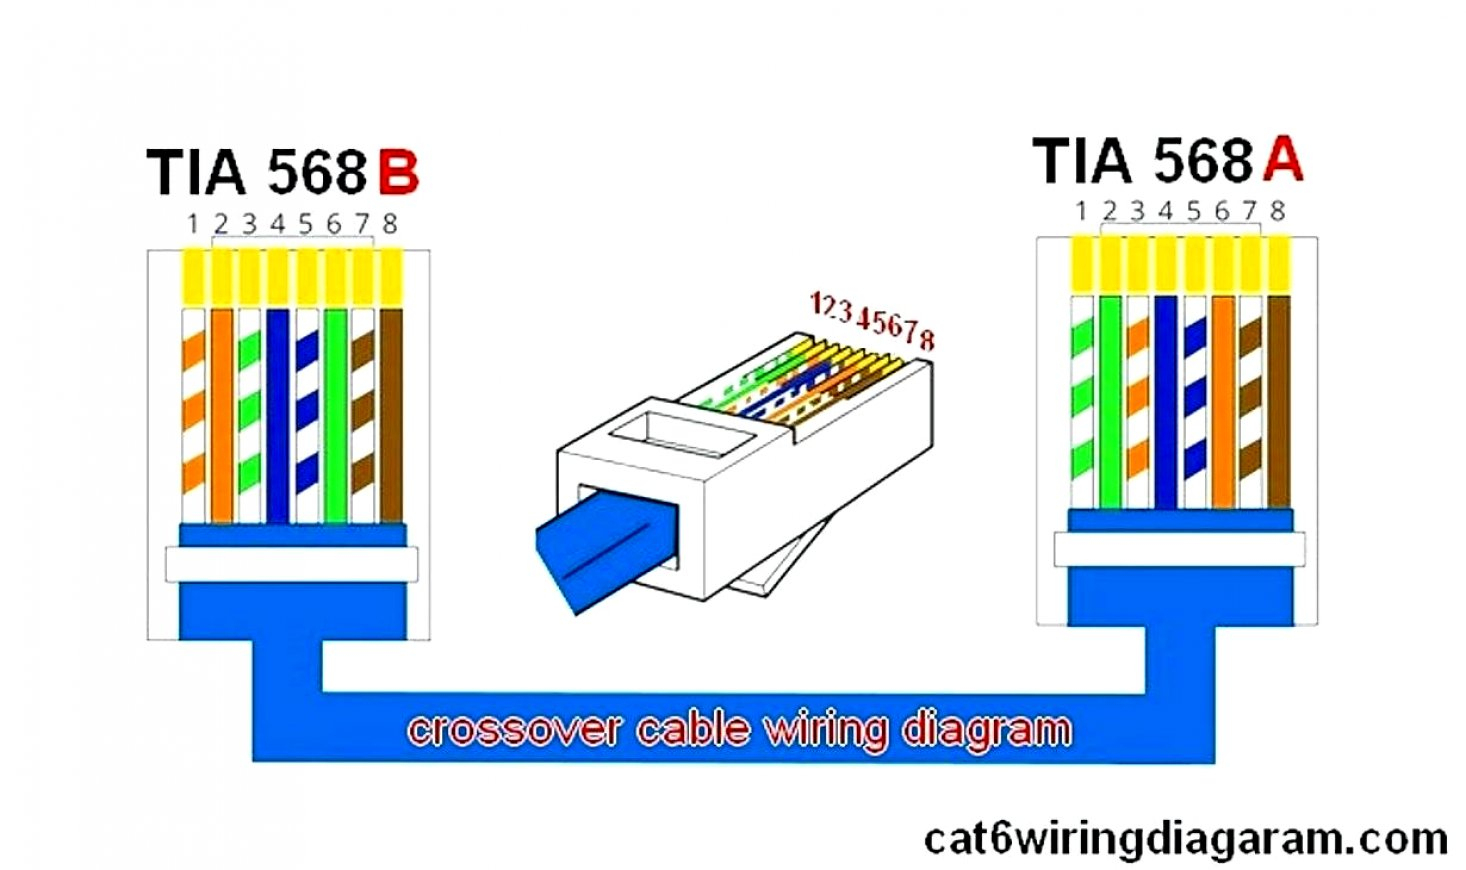 Cat 5 Ethernet Wire Diagram - Wiring Diagram Data - Ethernet Cable Wiring Diagram